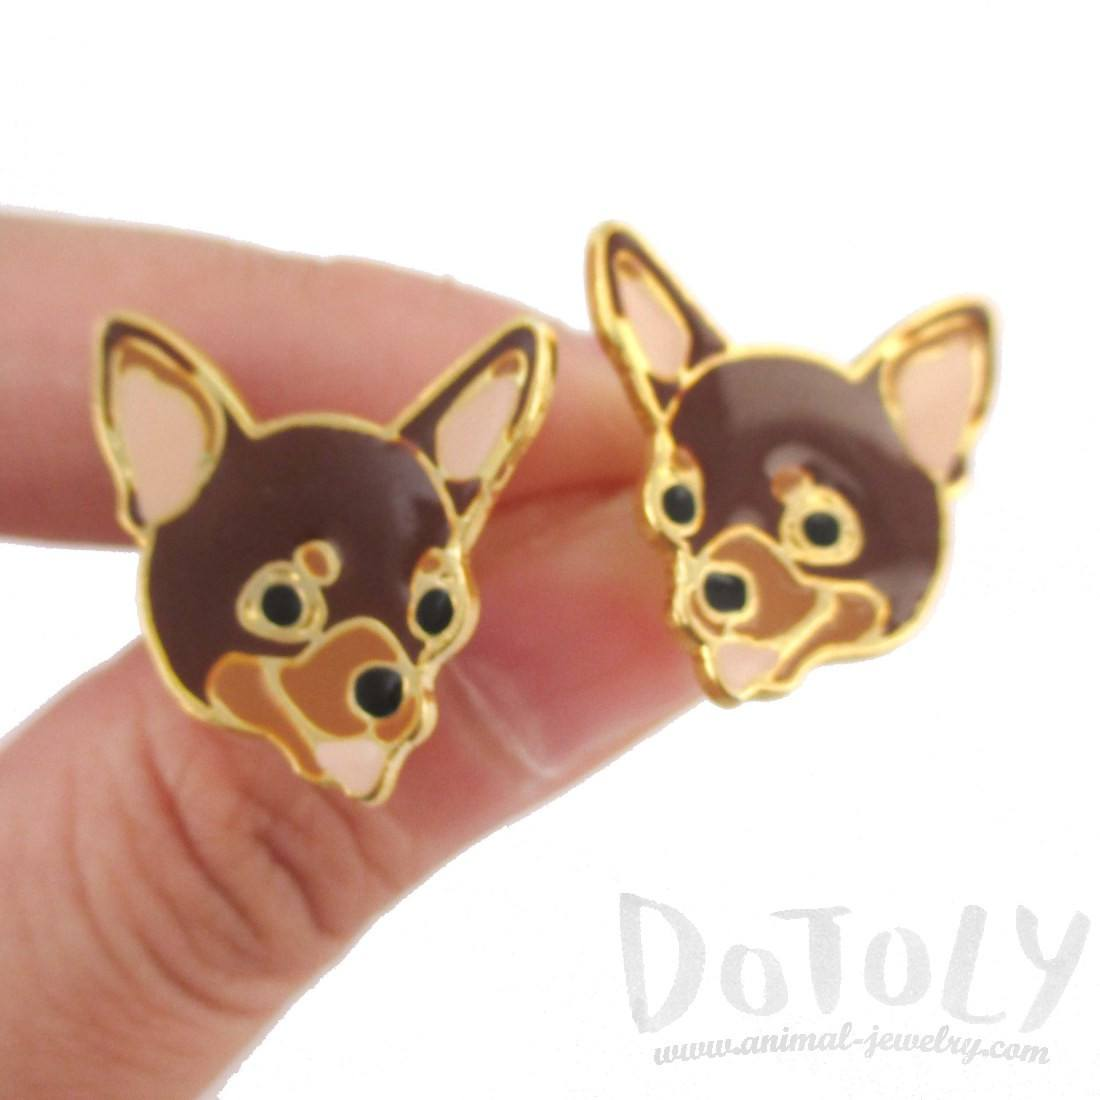 Adorable Chihuahua Puppy Dog Face Shaped Stud Earrings in Brown